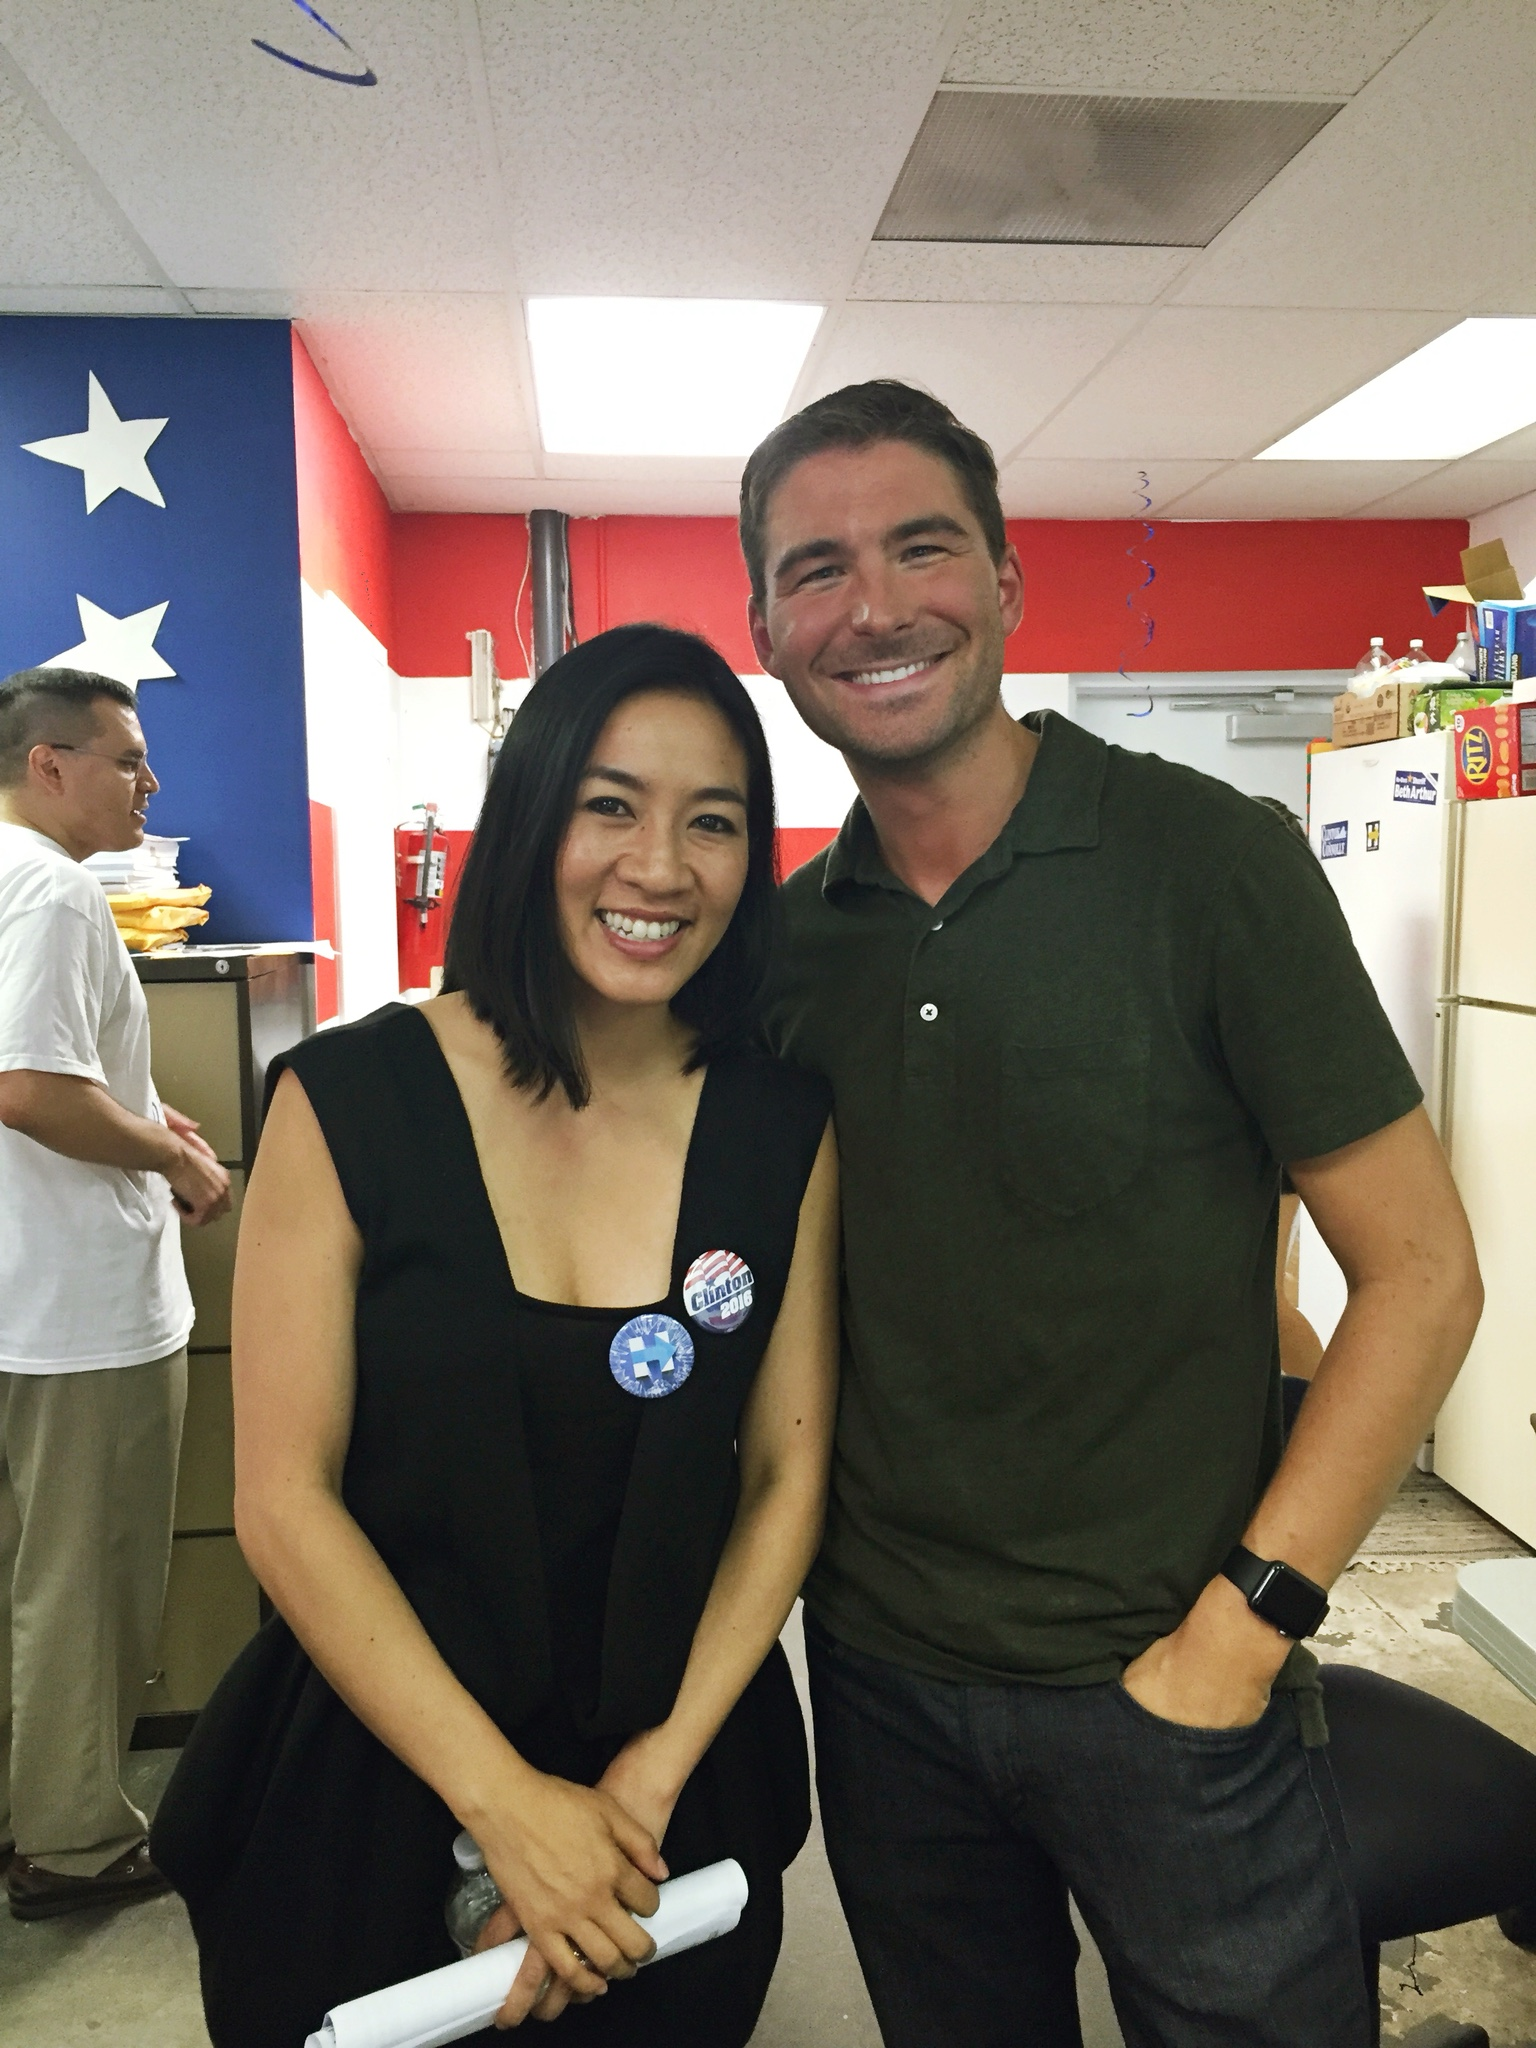 James Kicklighter Hillary Clinton Michelle Kwan is Working for Hillary Clinton